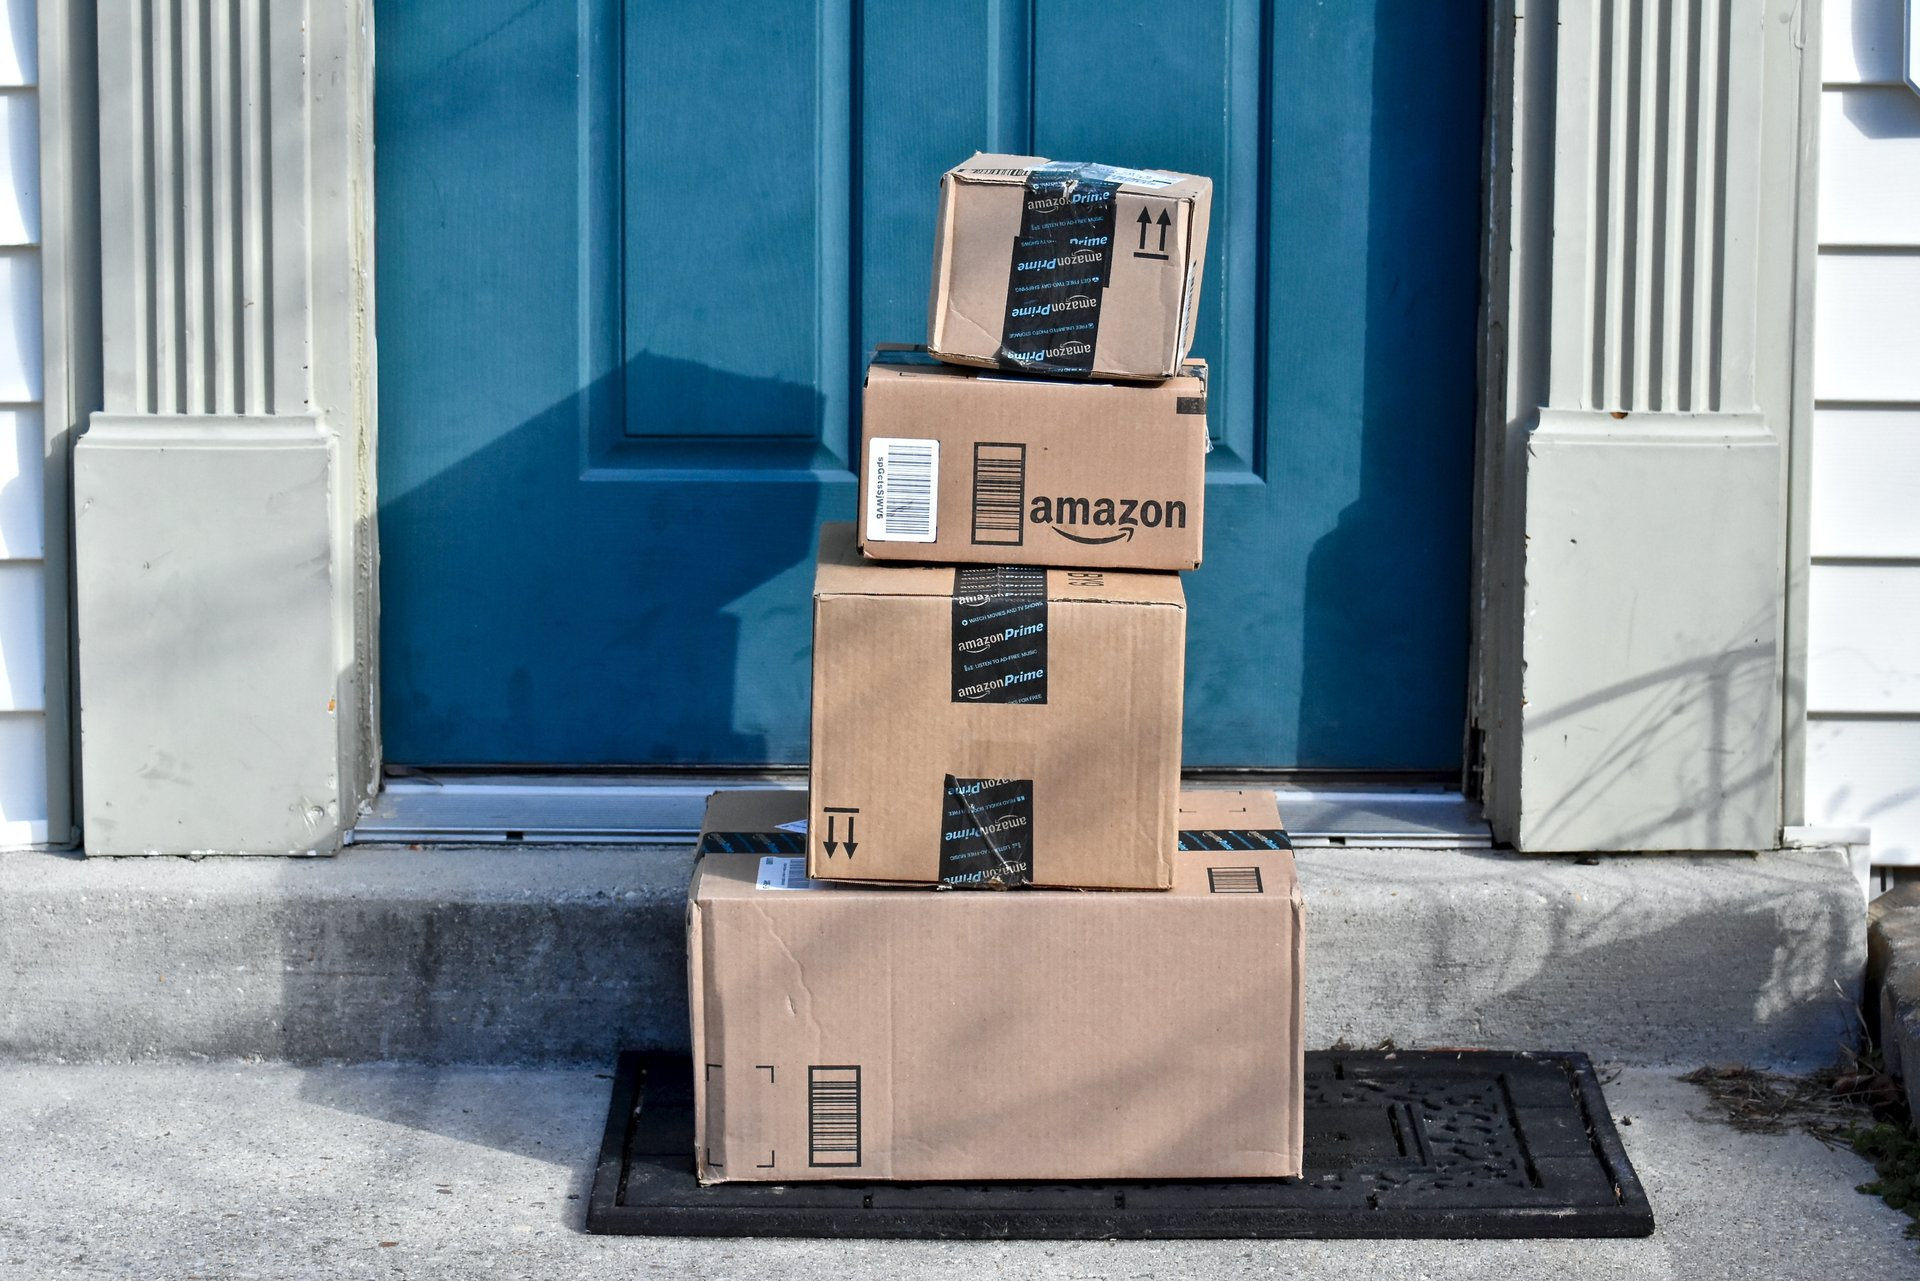 Packages from Amazon are piled in front of a door